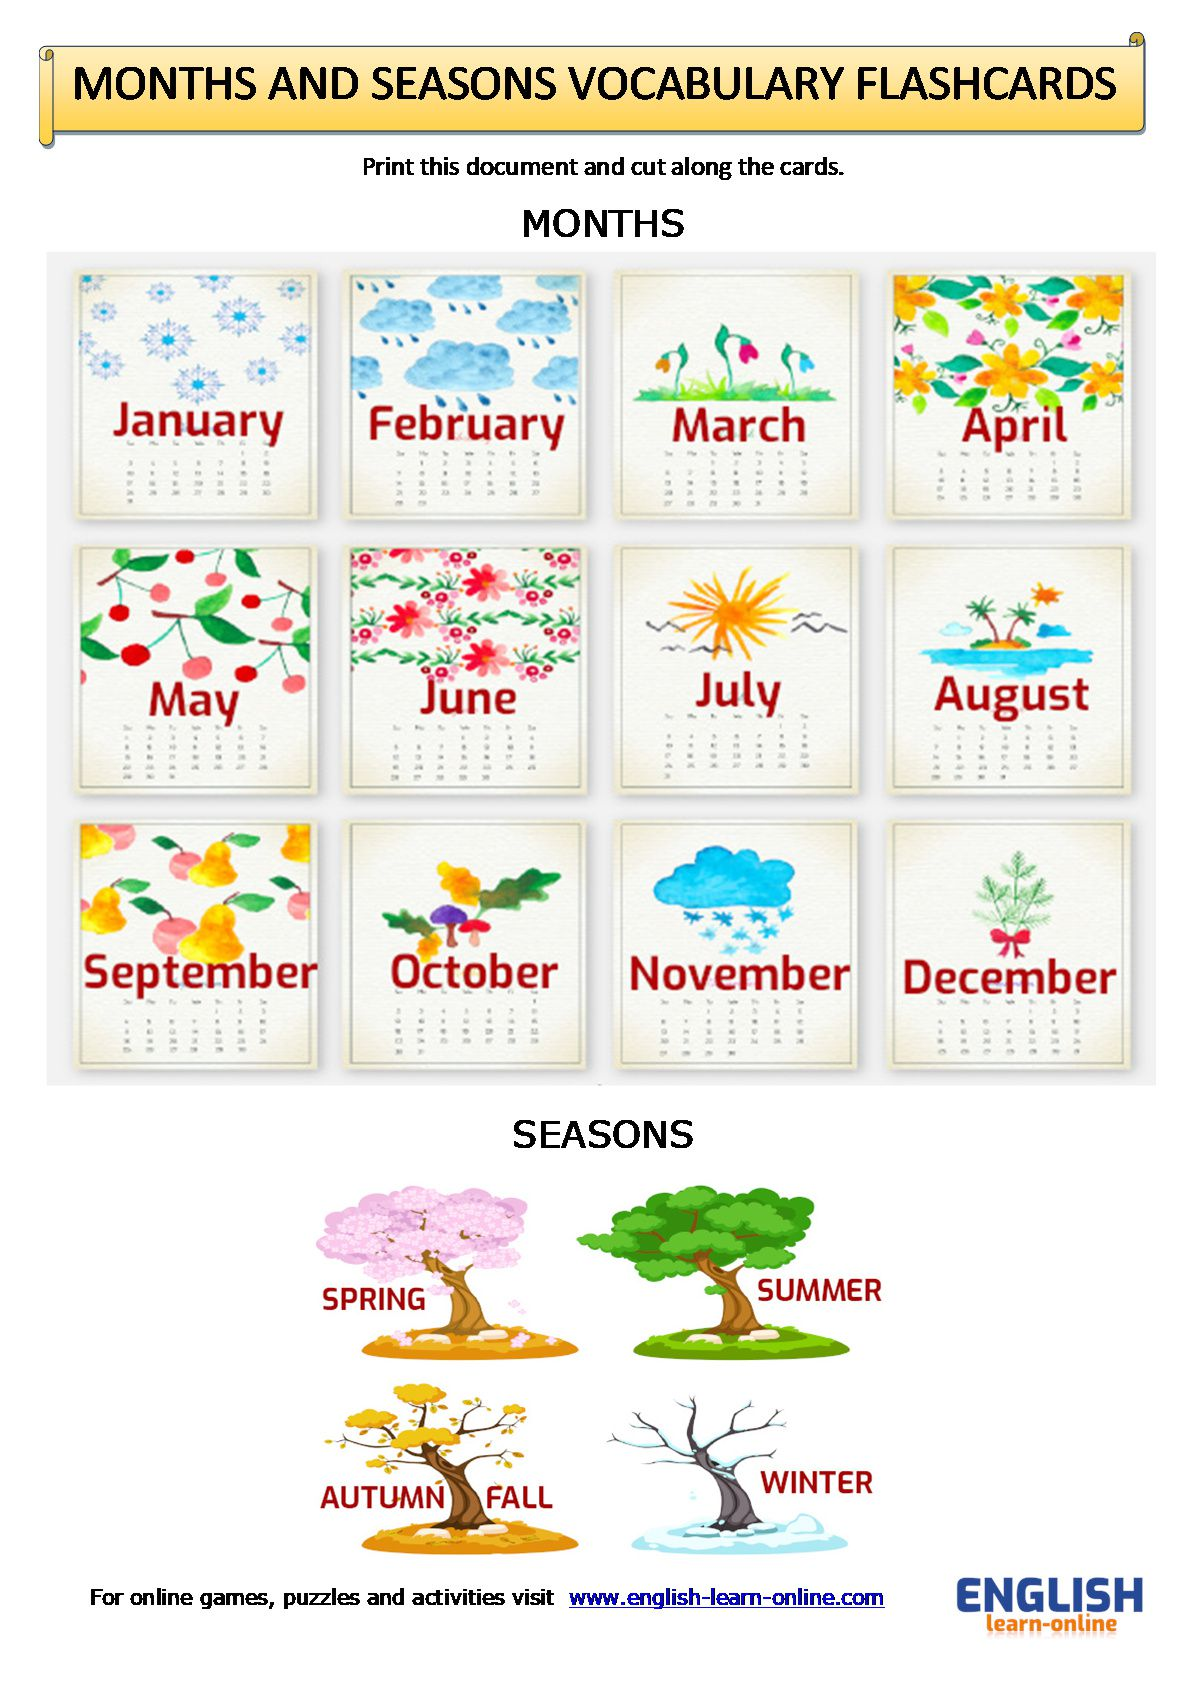 Days Months And Seasons In English